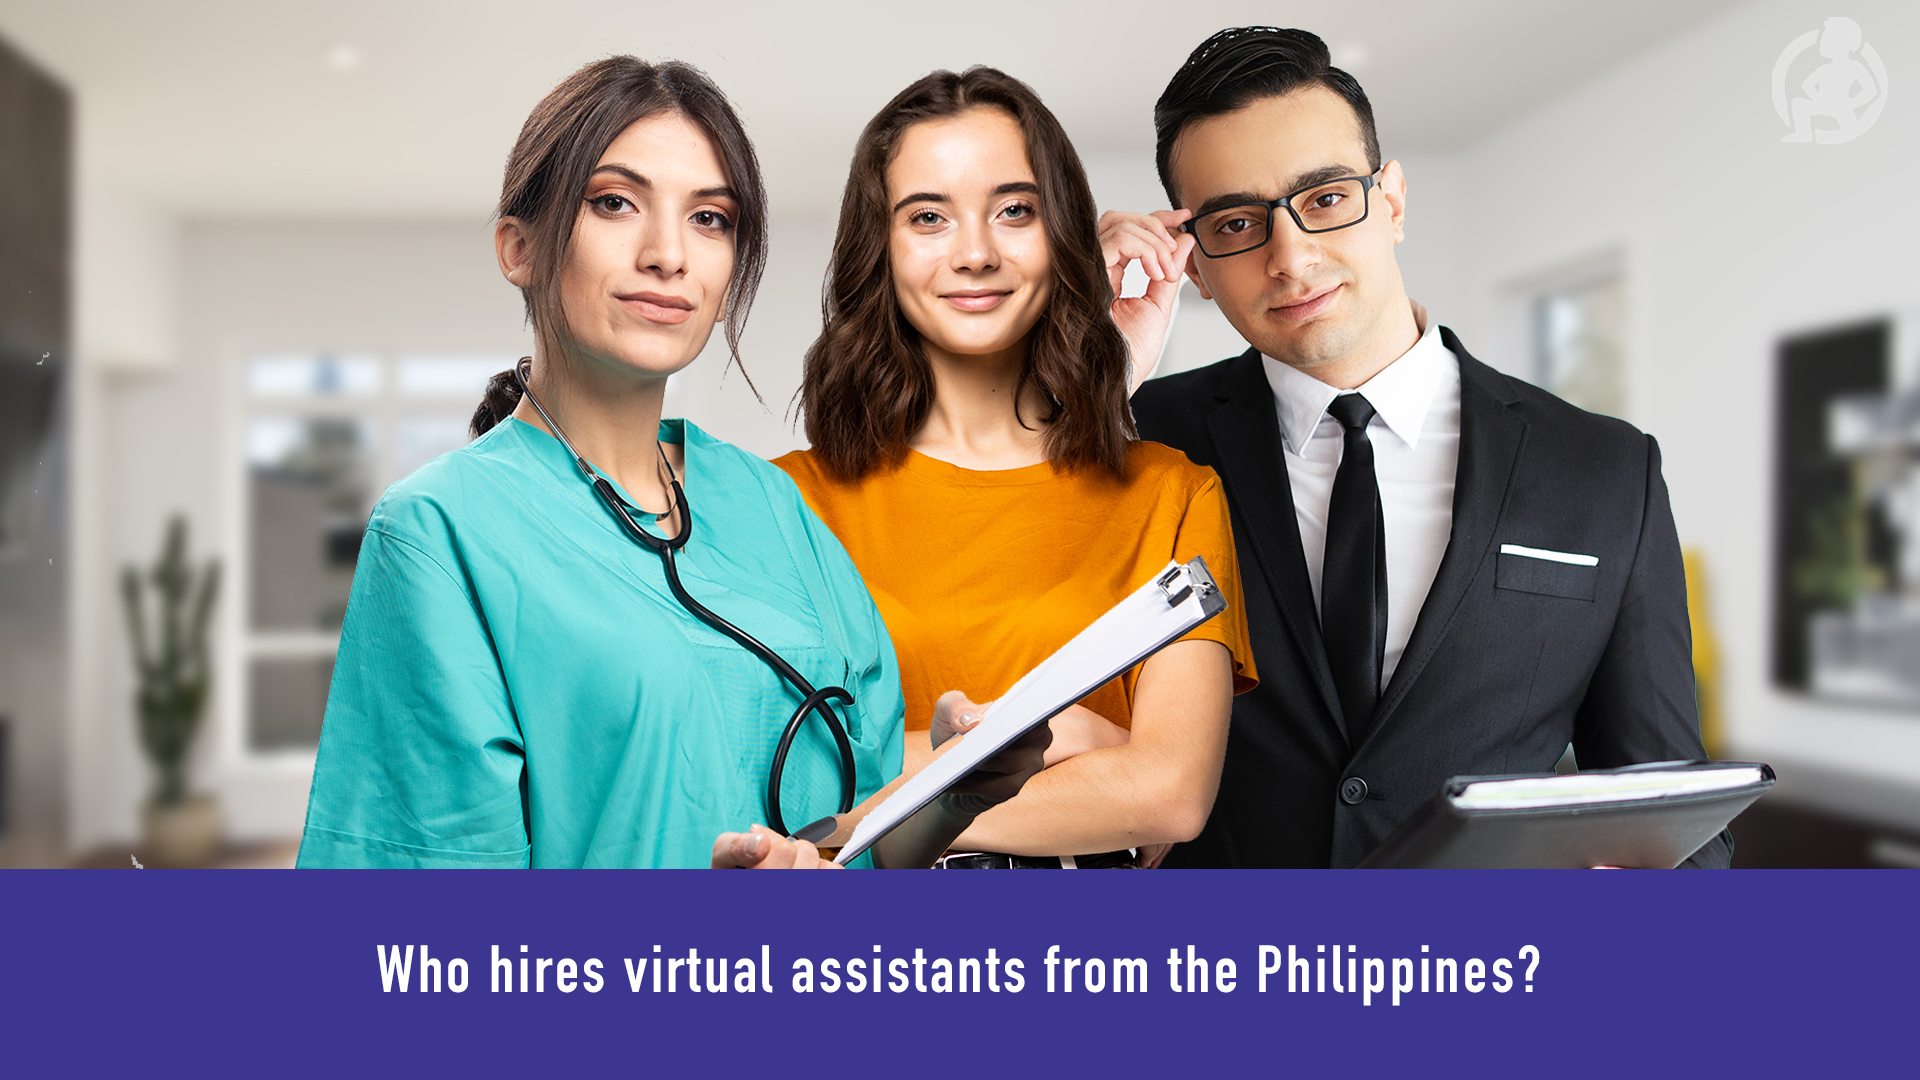 574 Who hires virtual assistants